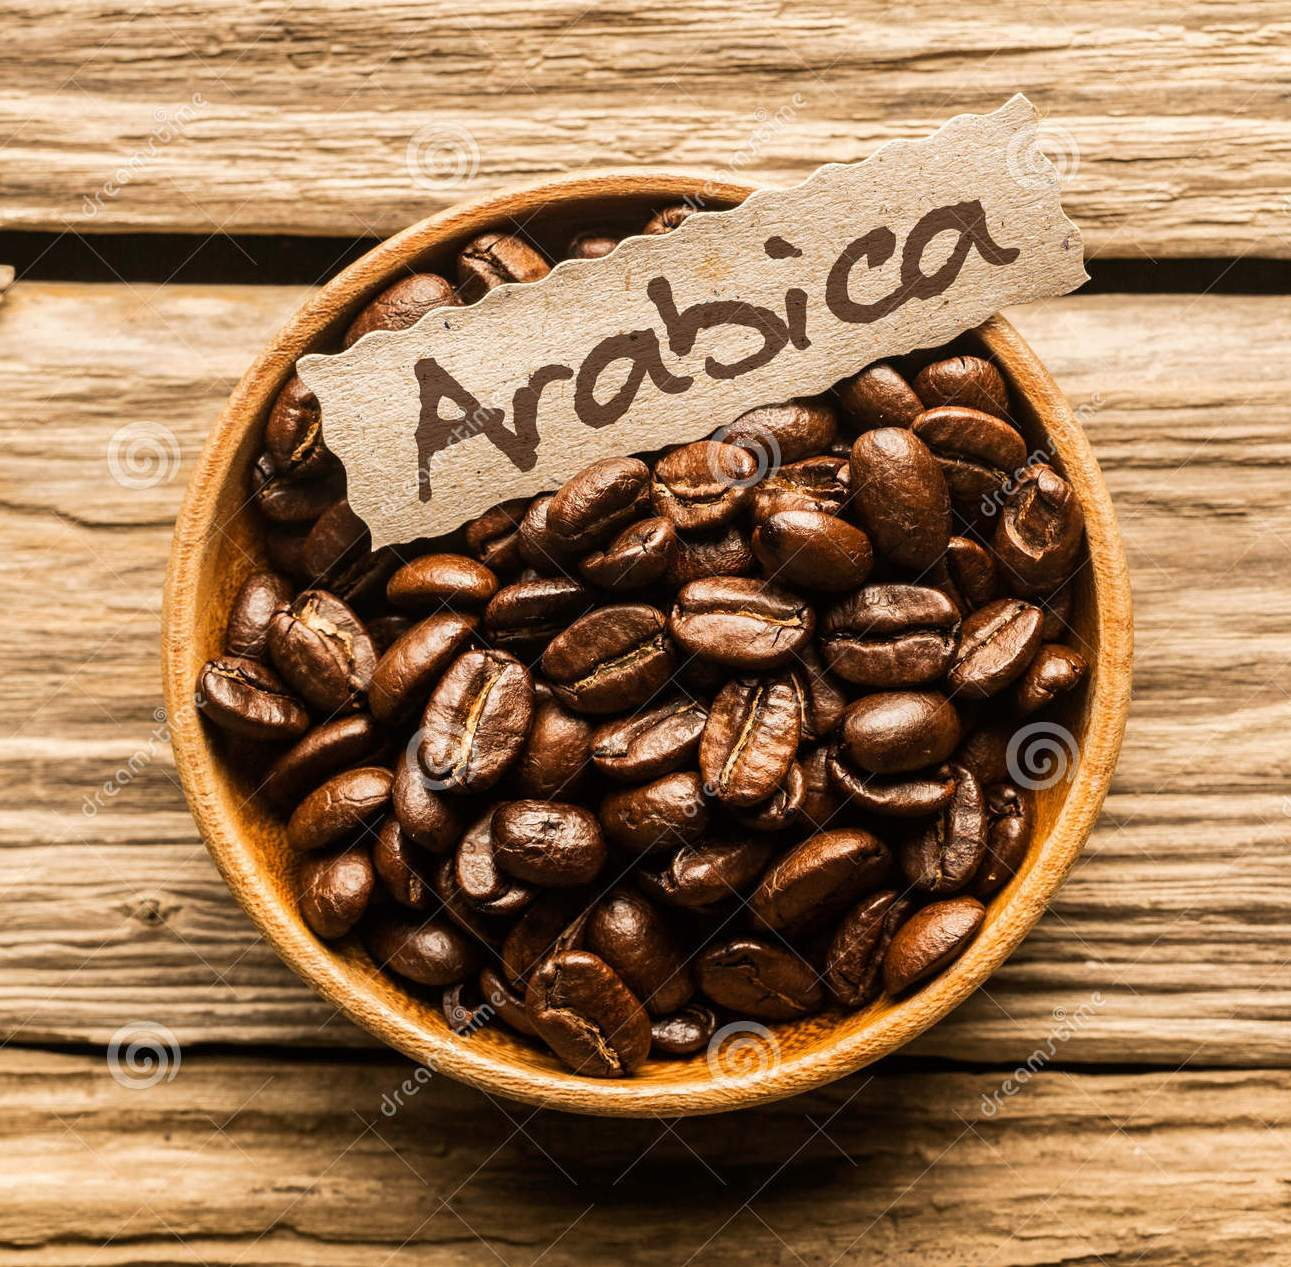 arabica-coffee